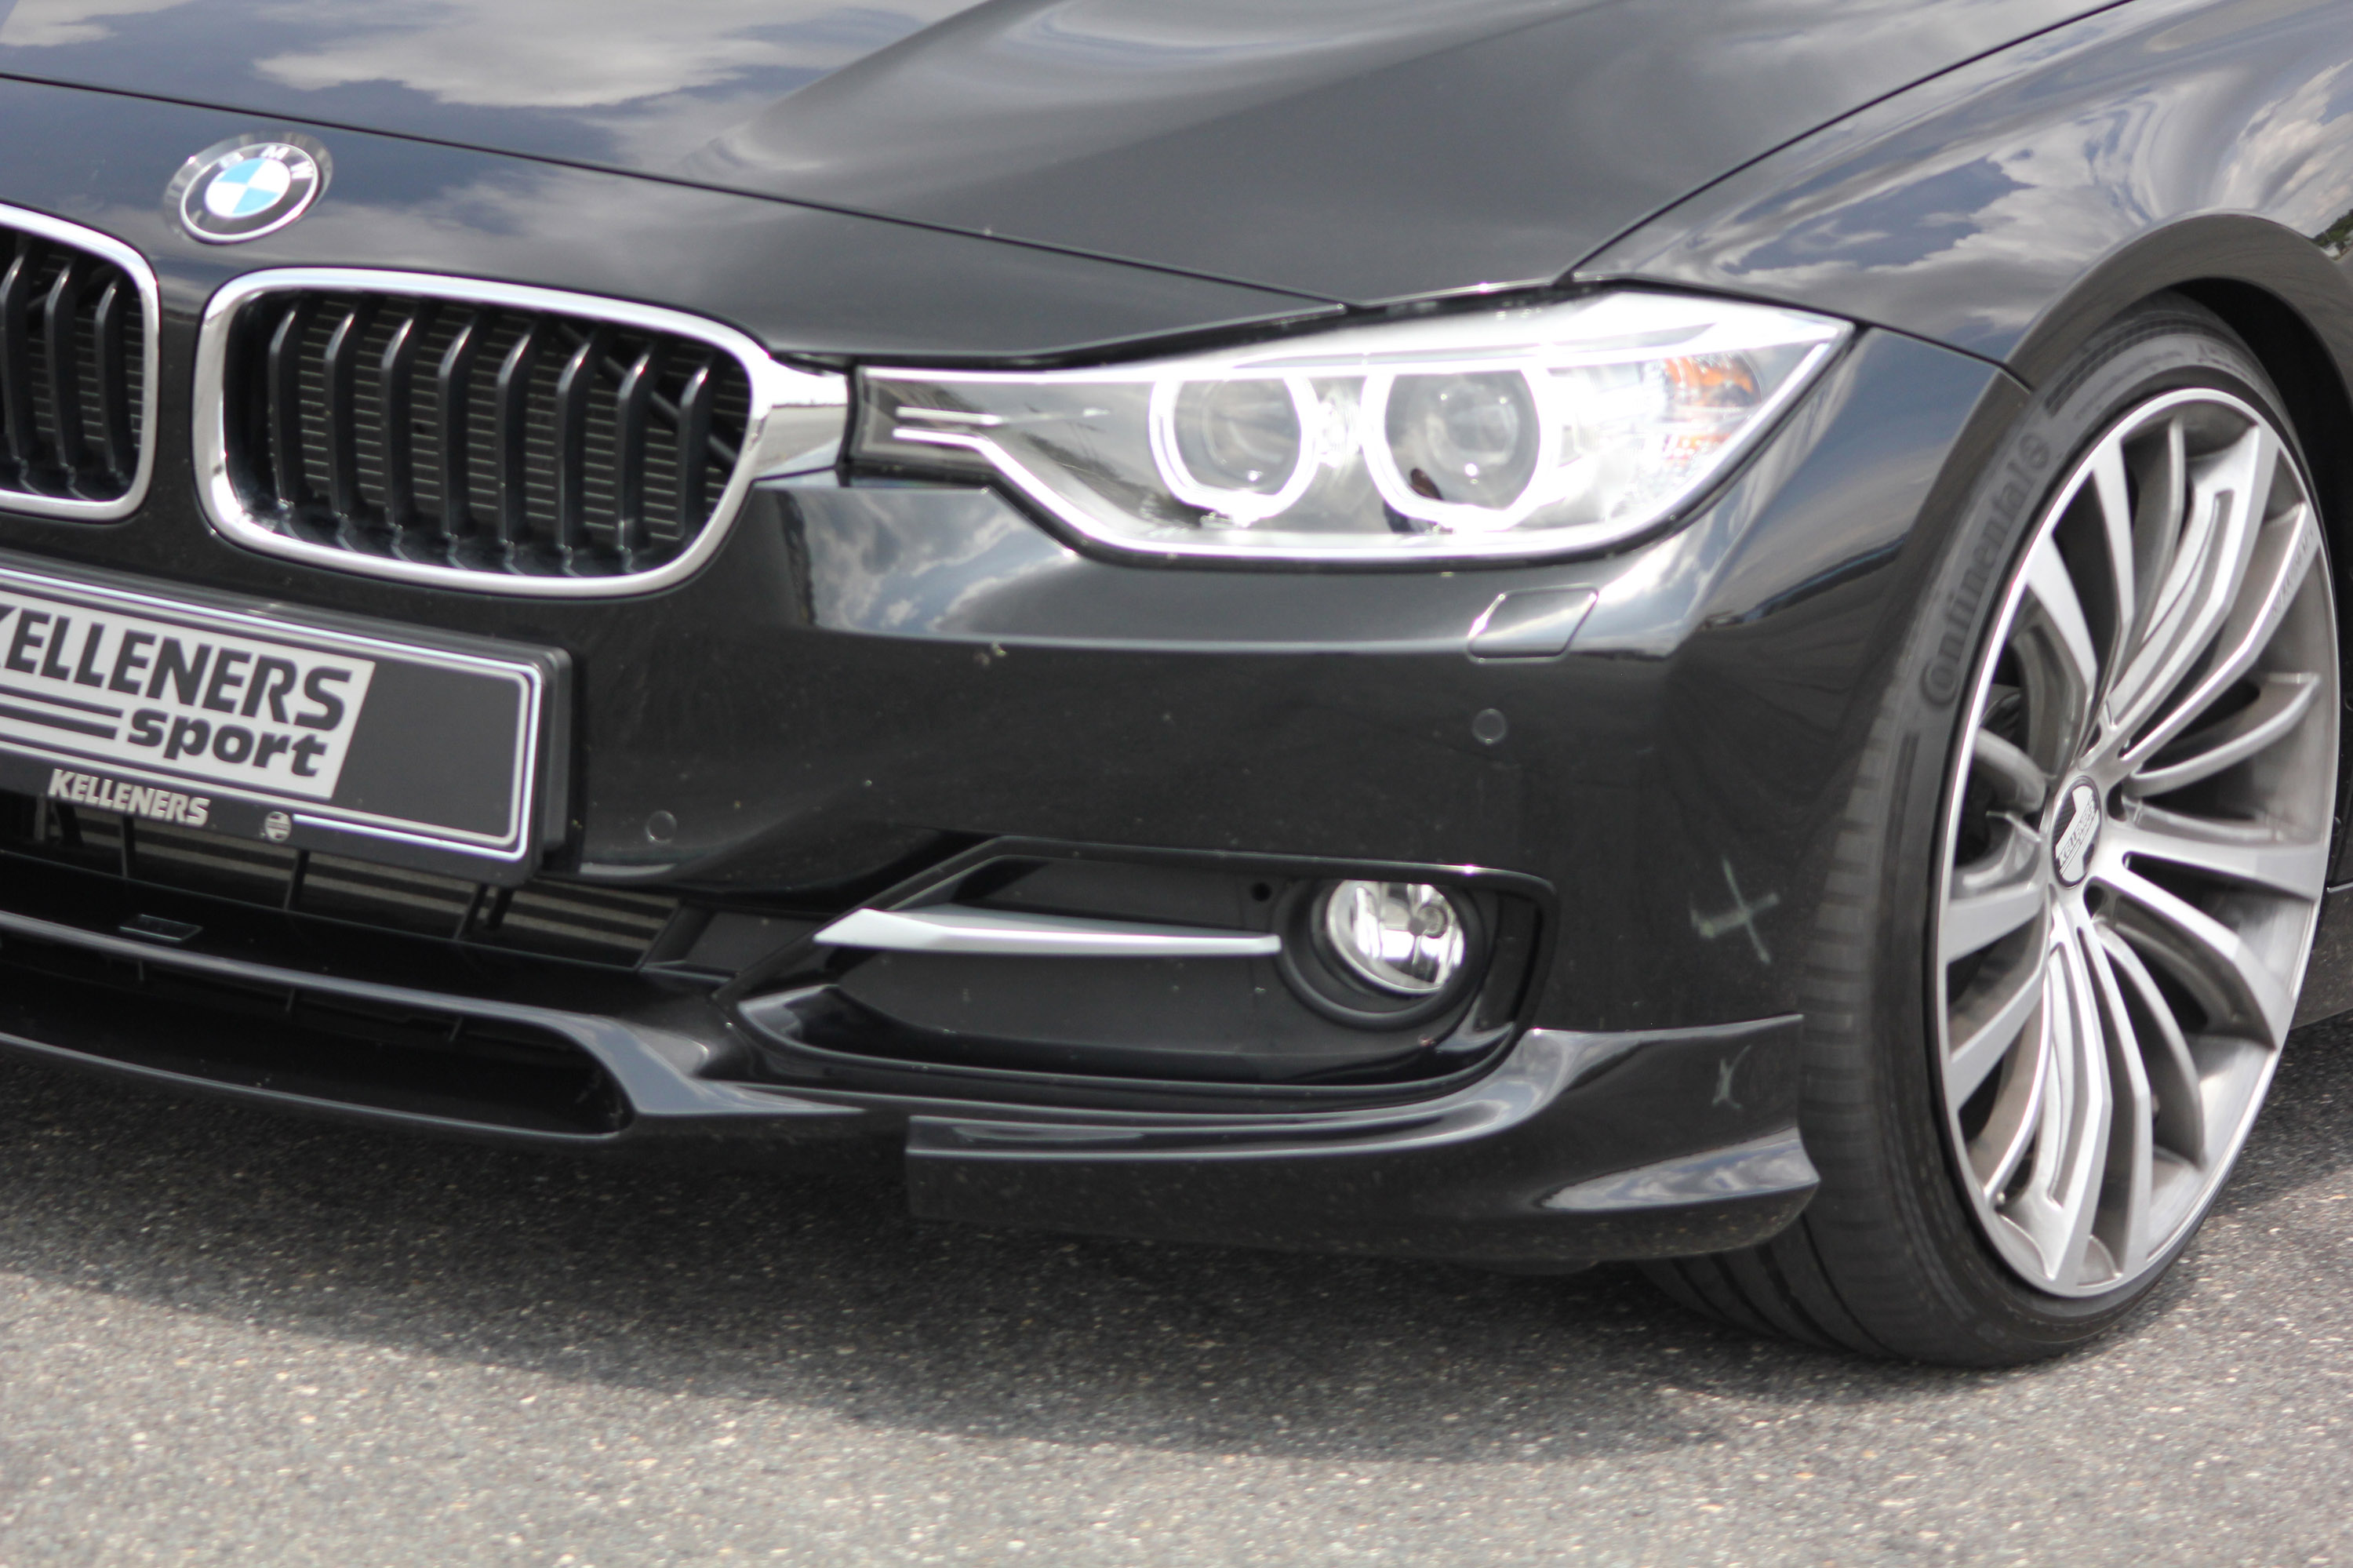 Kelleners Sport Package For Bmw 3 Series F30